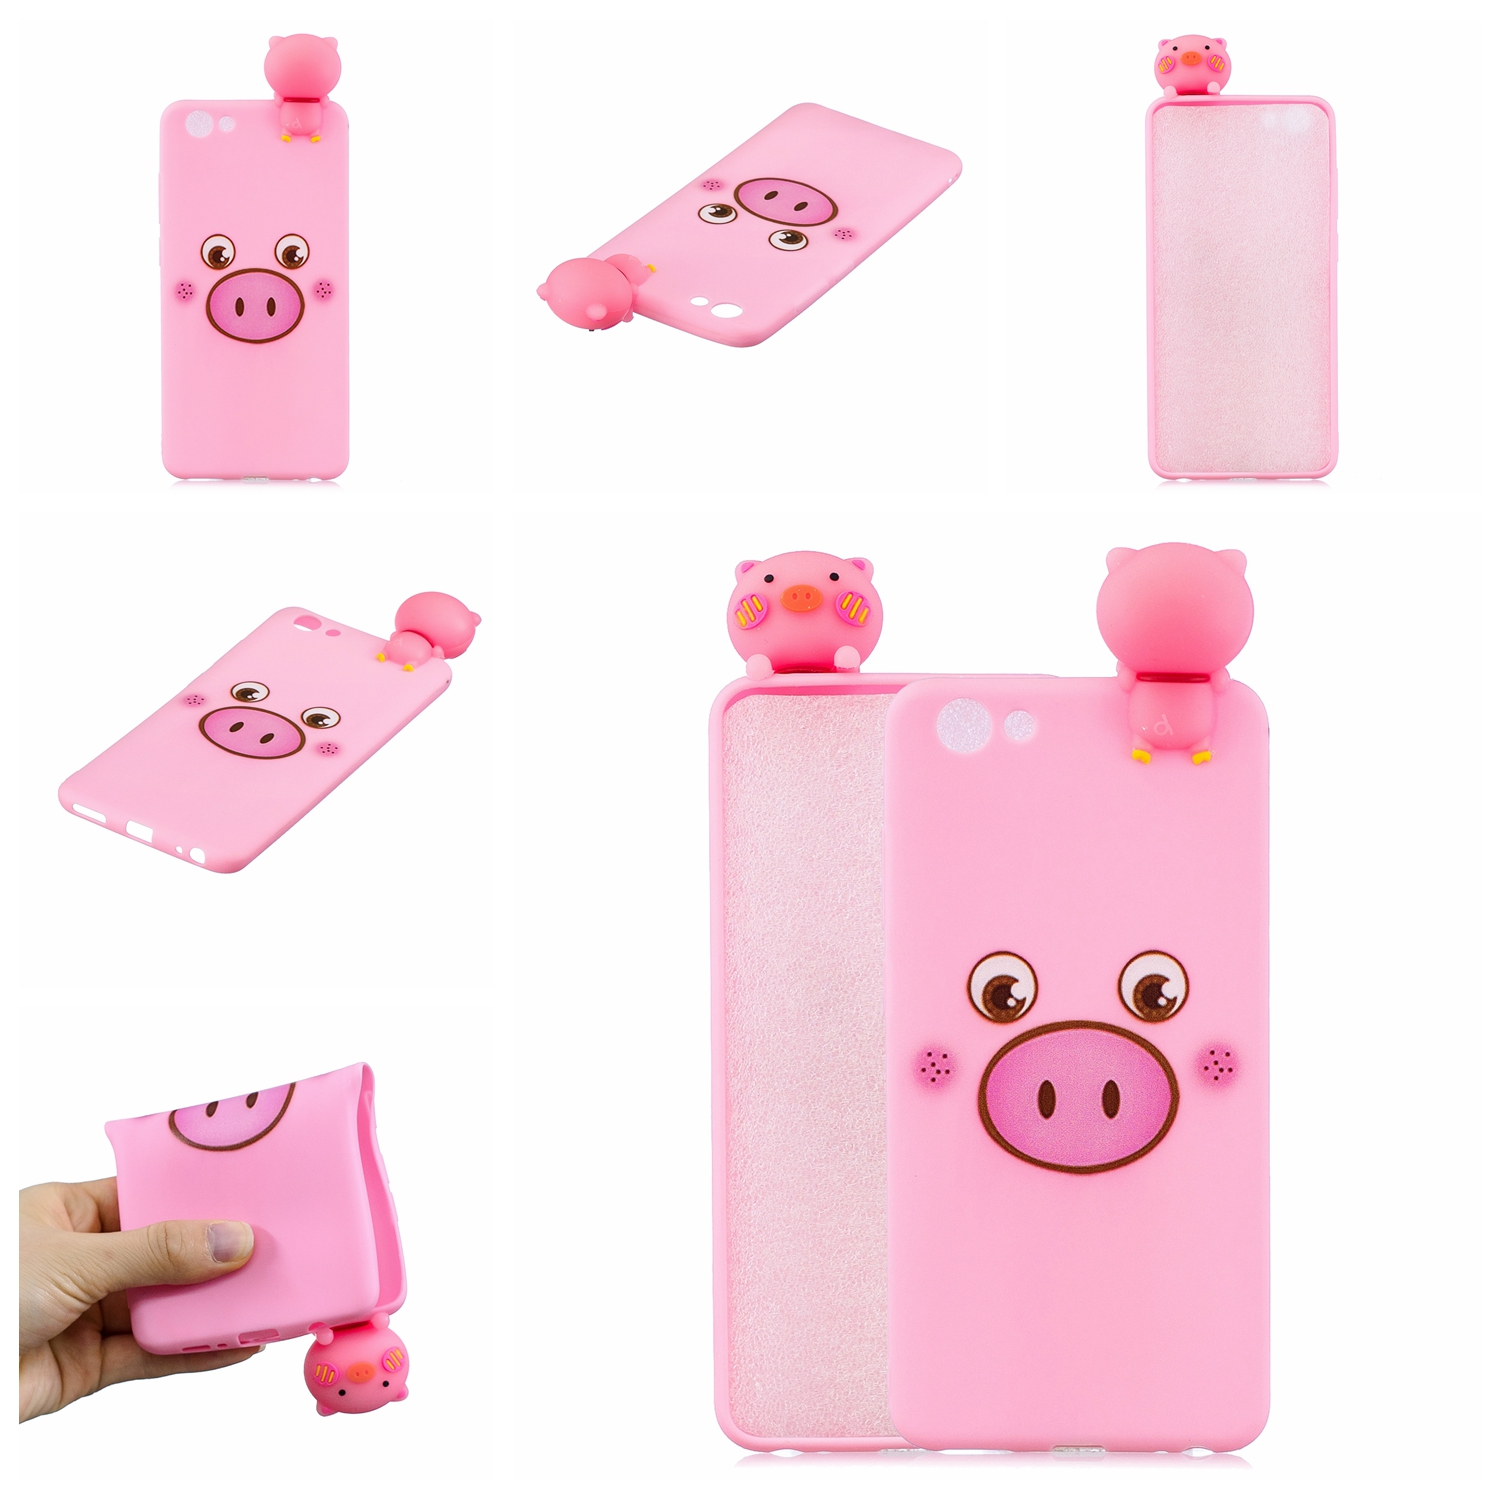 For VIVO Y71 3D Cute Coloured Painted Animal TPU Anti-scratch Non-slip Protective Cover Back Case Small pink pig